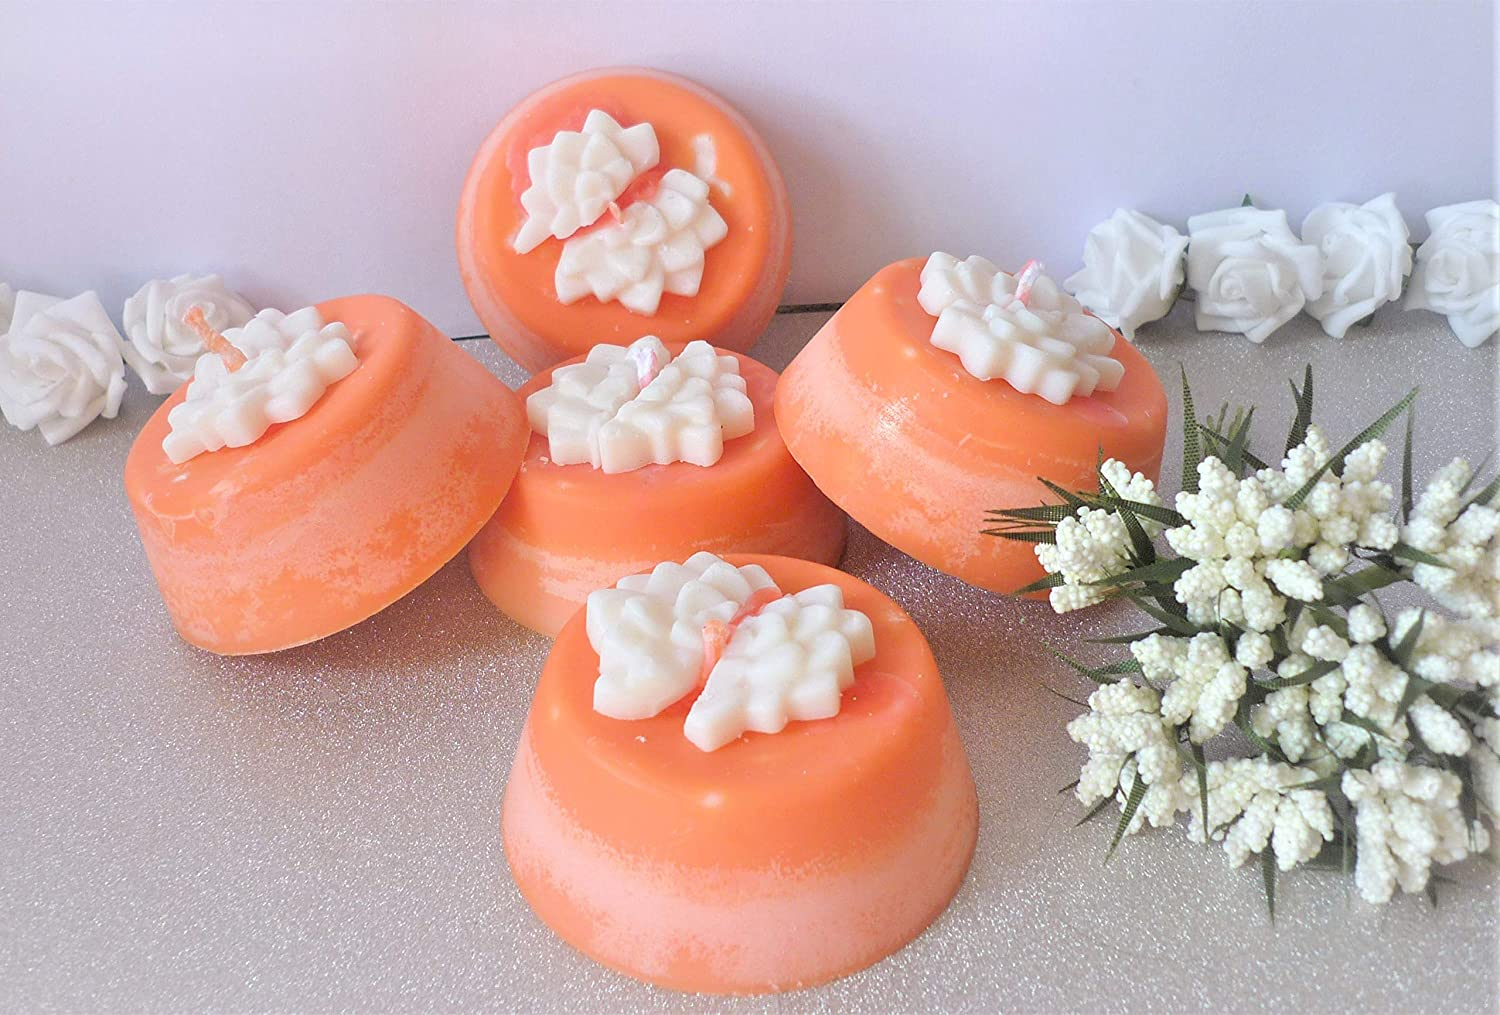 Handmade large tealight candles made from soy wax